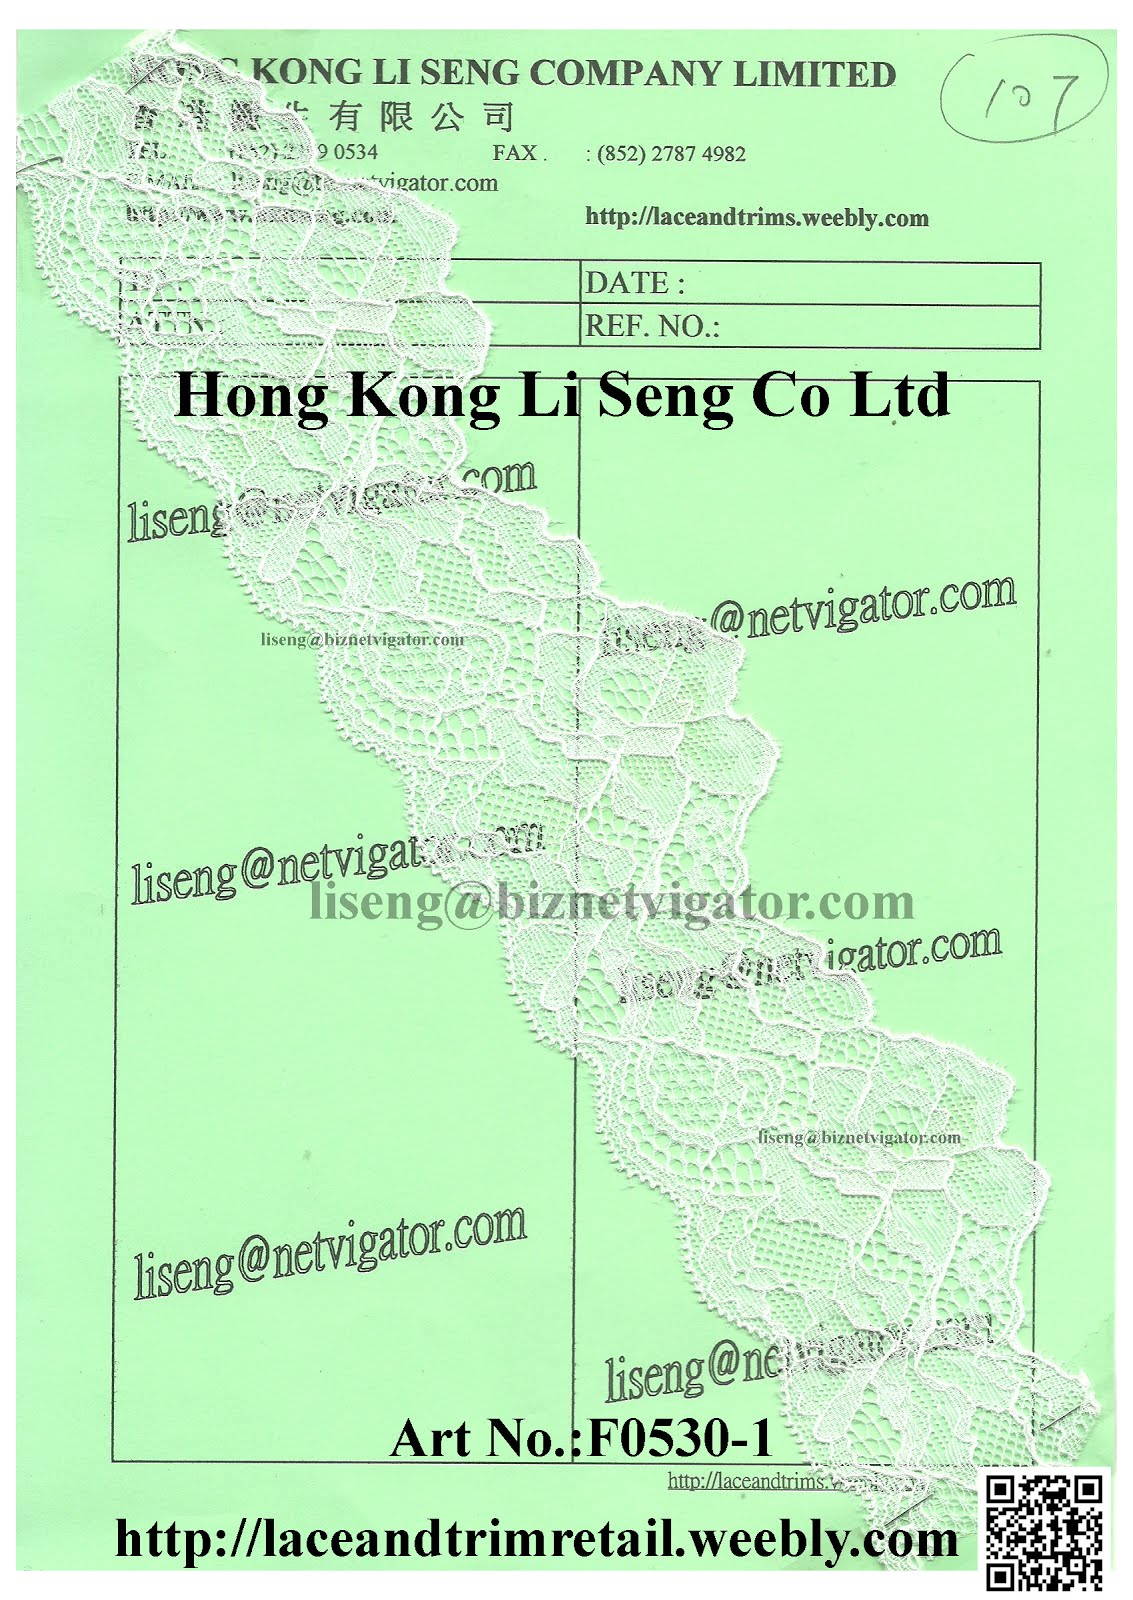 Lace Trims Wholesale Manufacturer and Supplier - Hong Kong Li Seng Co Ltd